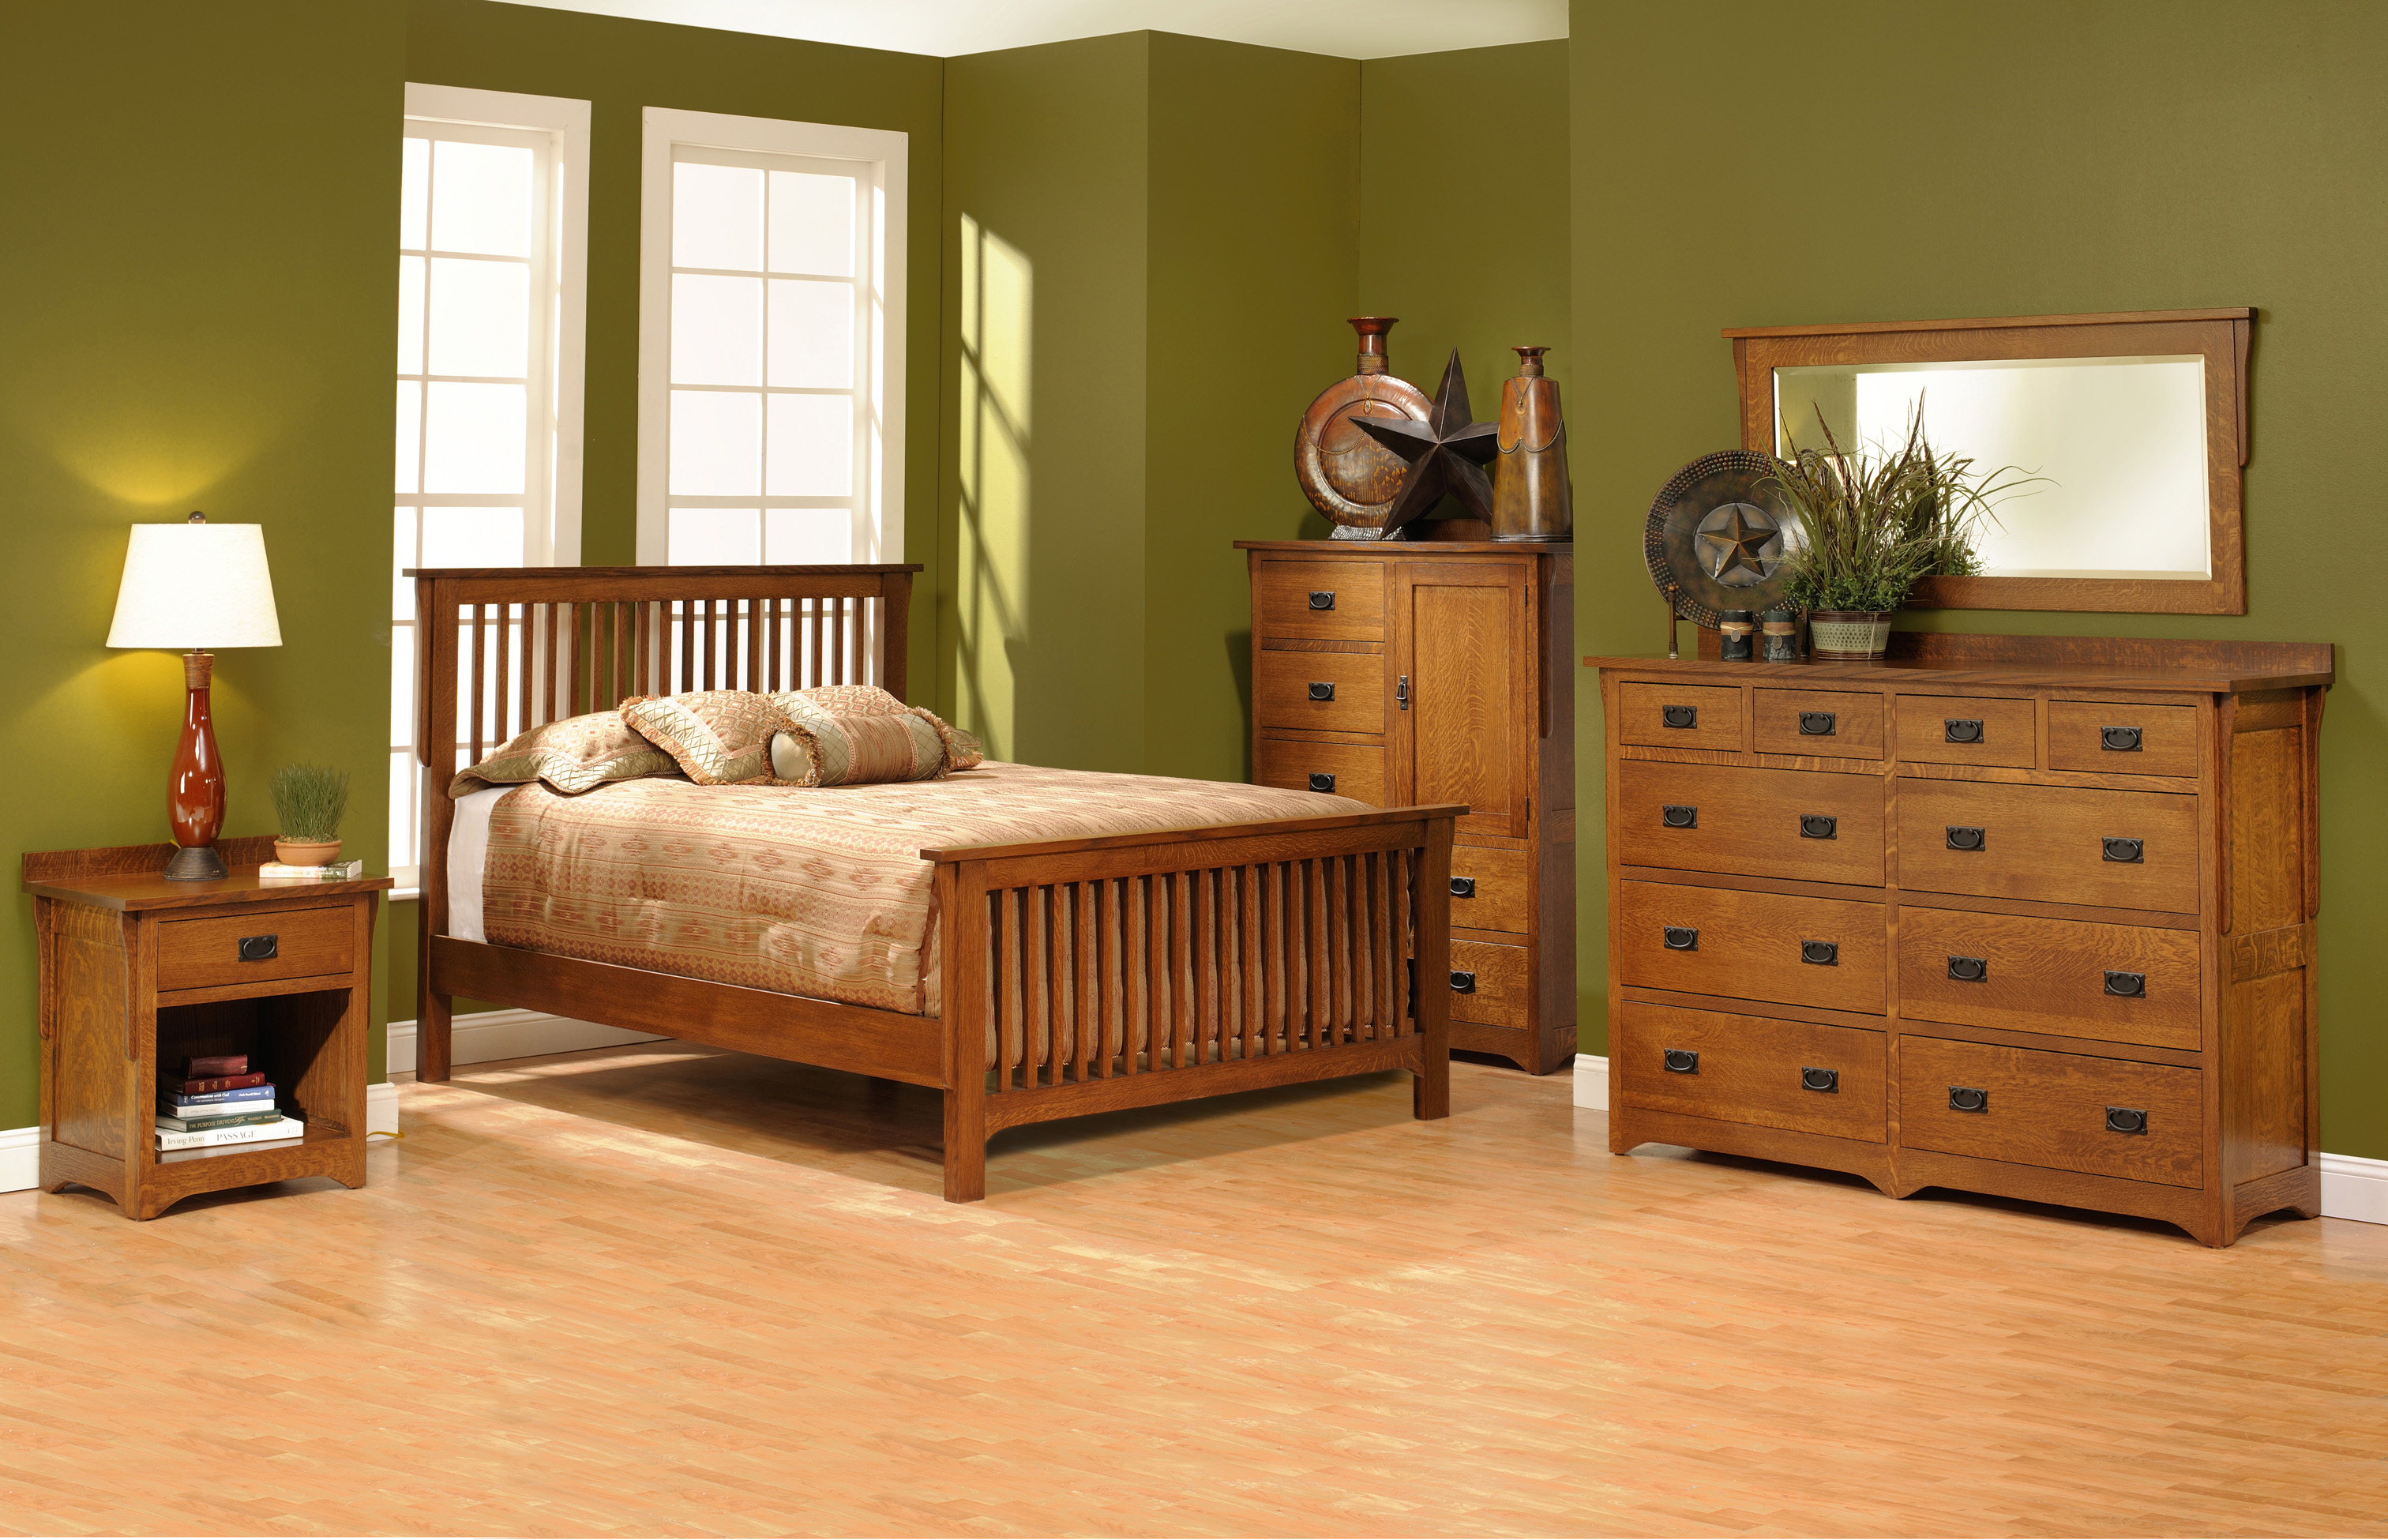 Deciding on mission style bedroom furniture – pros pros and pros